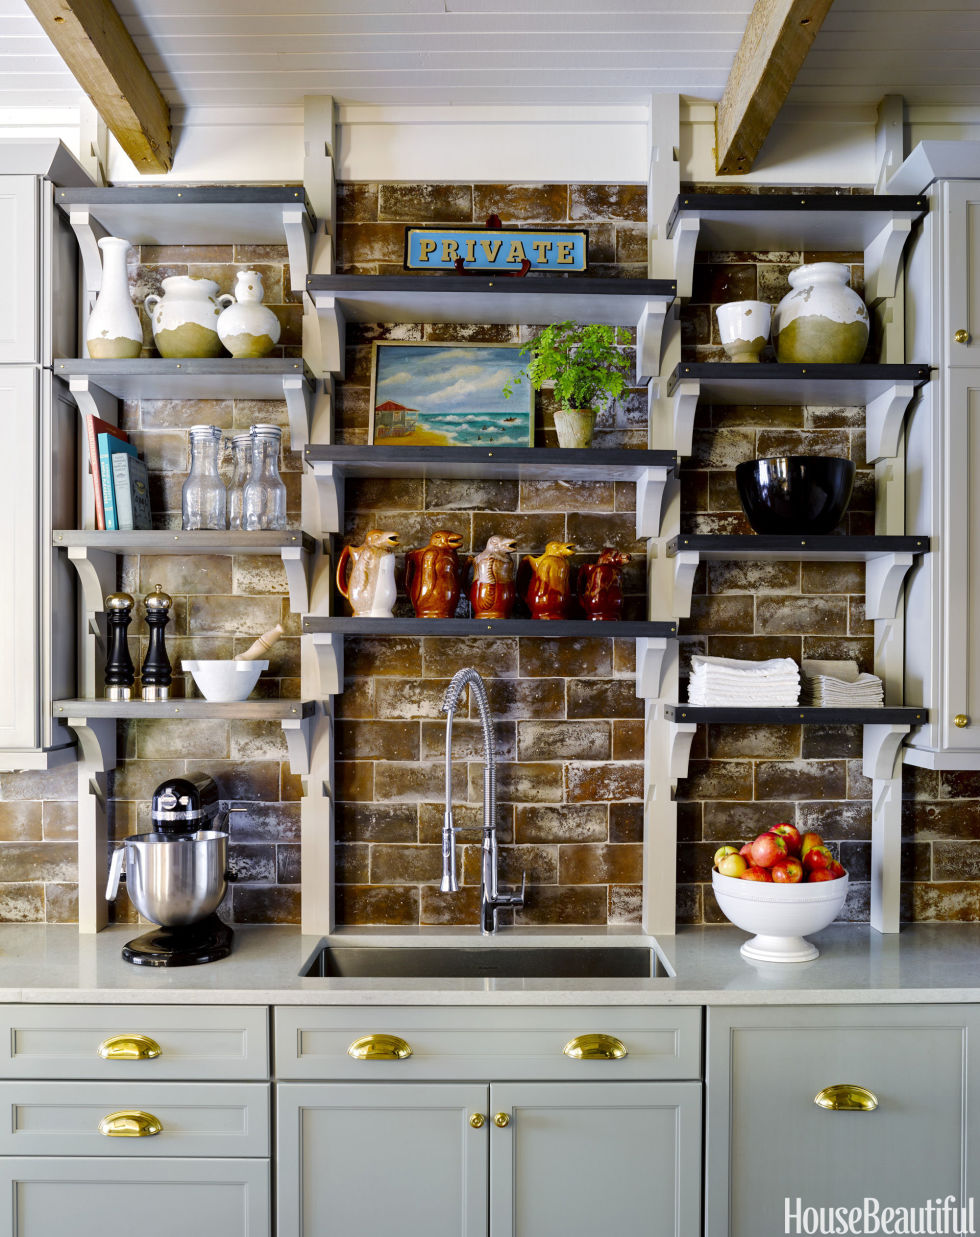 Backsplash Tile Ideas For Kitchens 50 best kitchen backsplash ideas - tile designs for kitchen